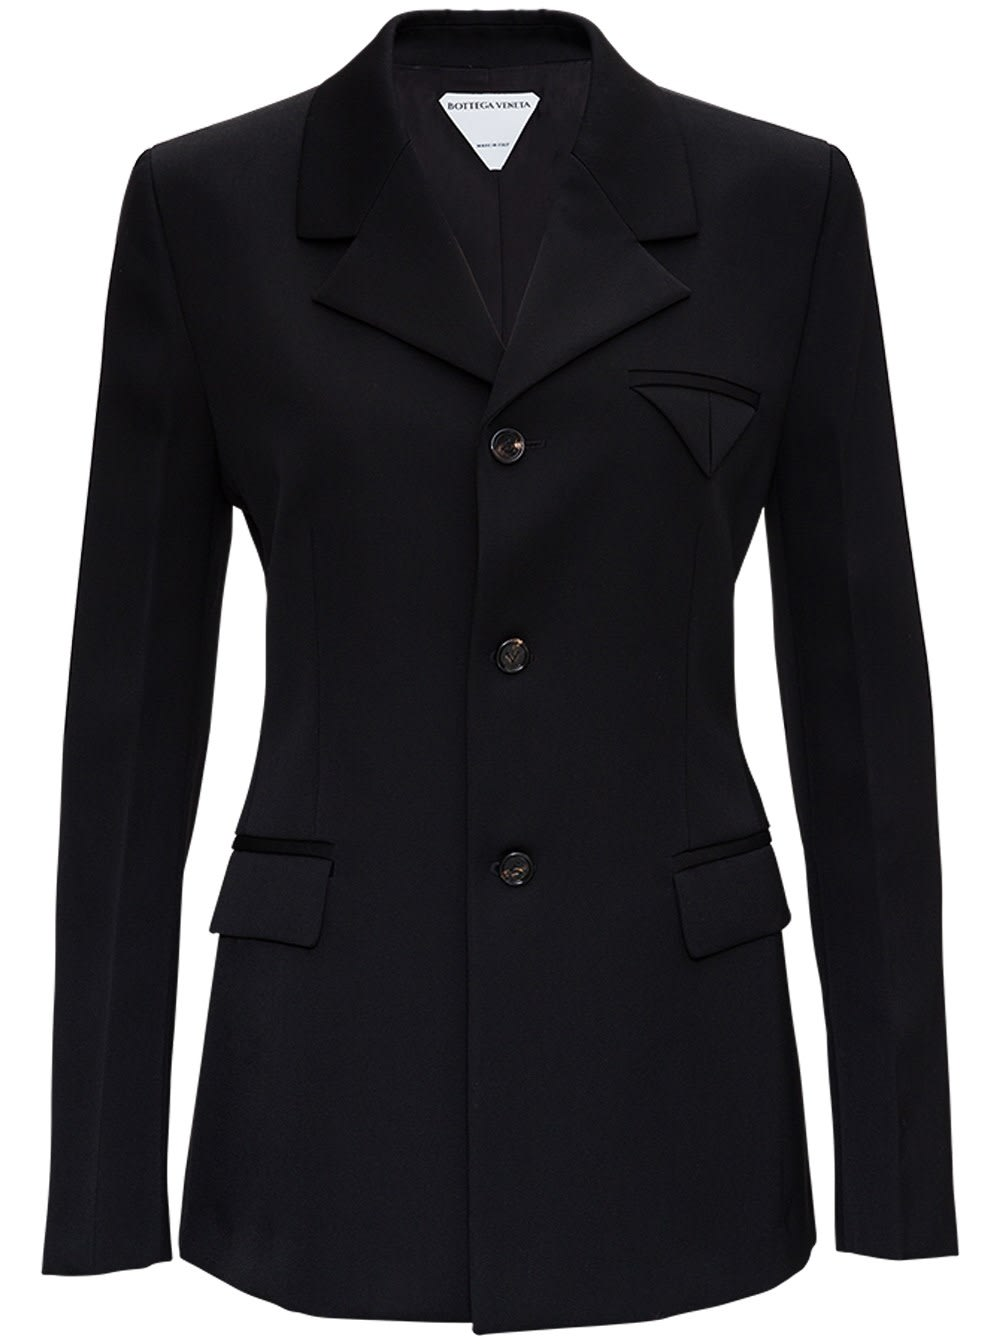 Bottega Veneta BLACK SINGLE BREASTED WOOL BLAZER